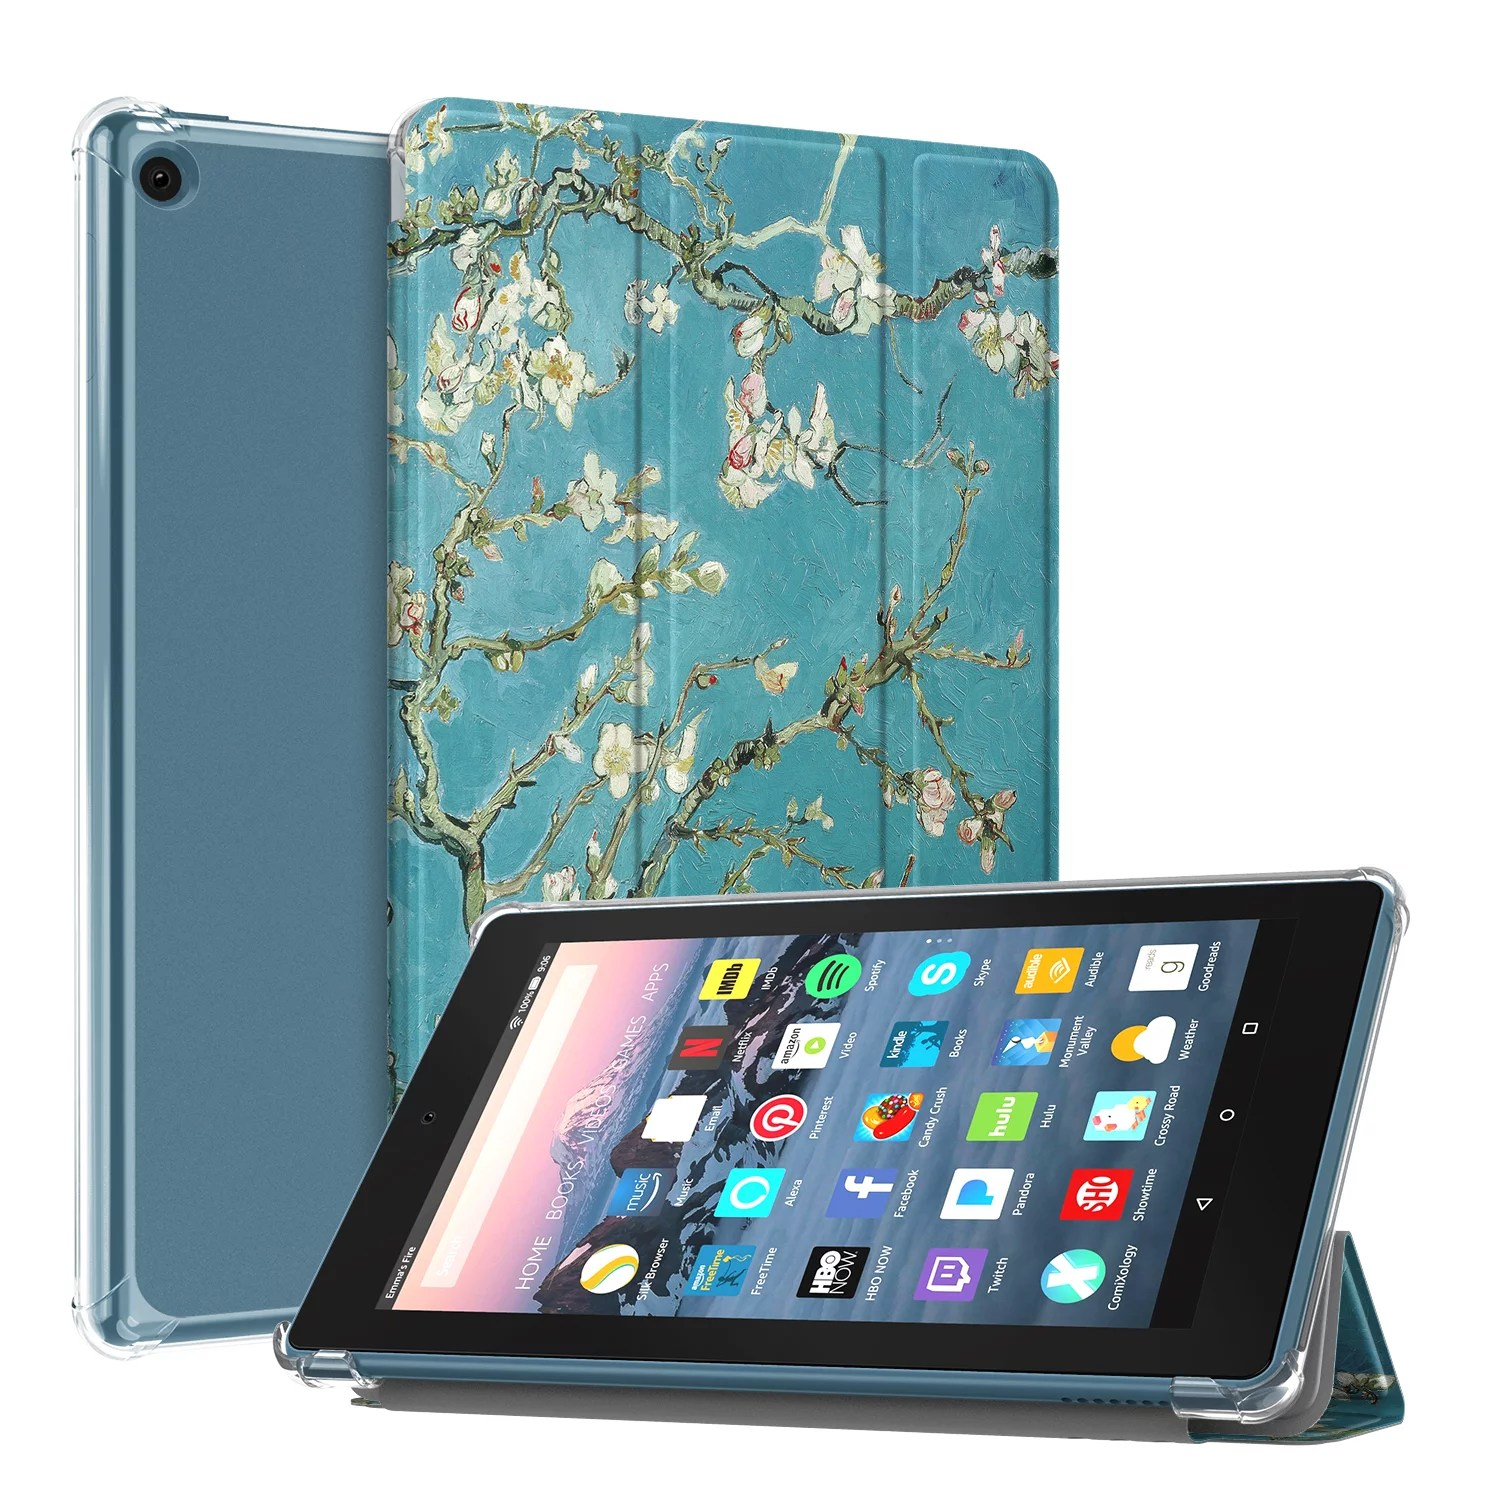 Fintie Slim Case for All-New Amazon Fire 7 Tablet (9th Generation. 2019 Release).Translucent Frosted Back Cover. Blossom - Walmart.com